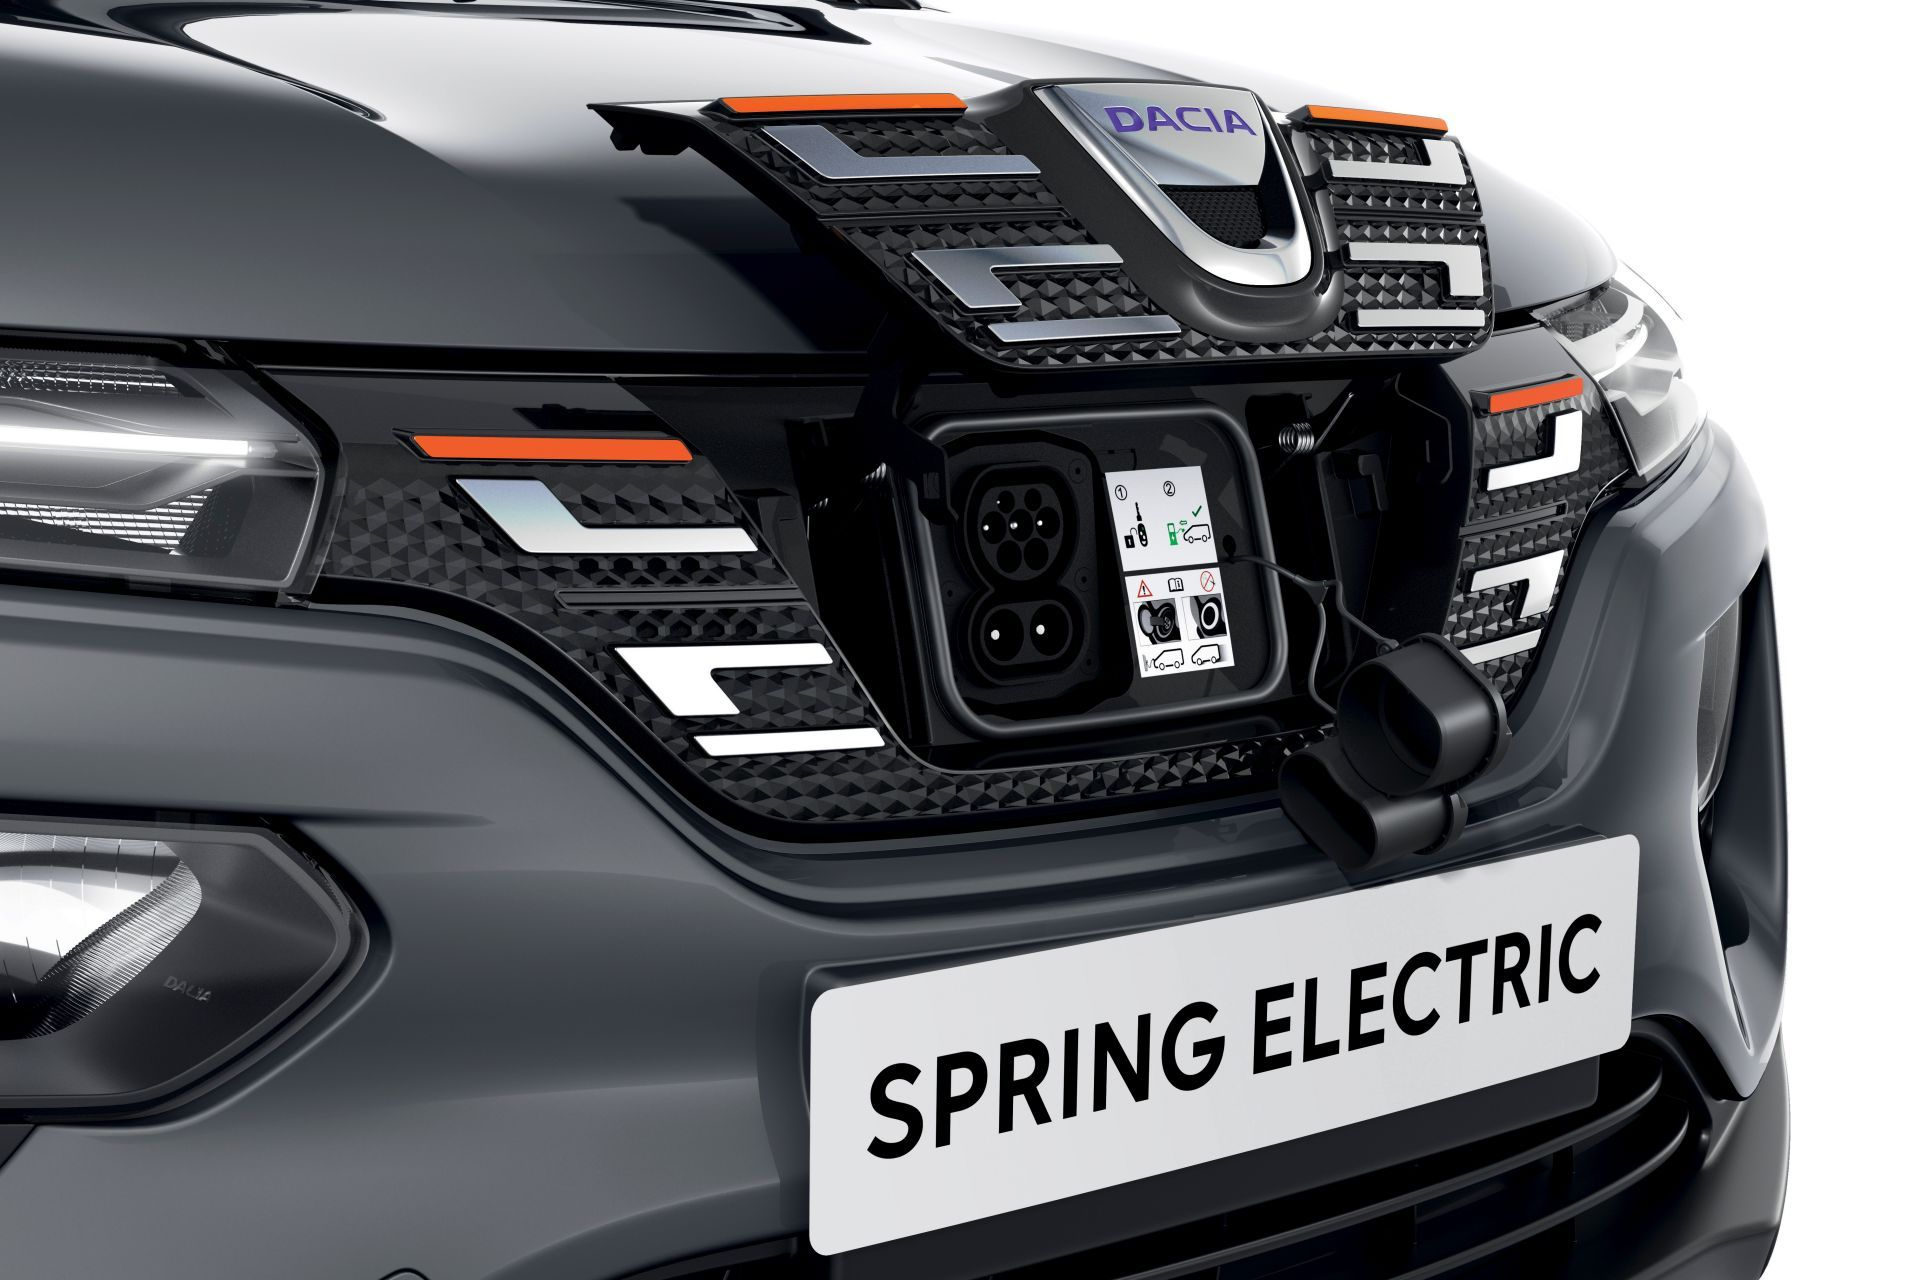 Dacia-Spring-Electric-16